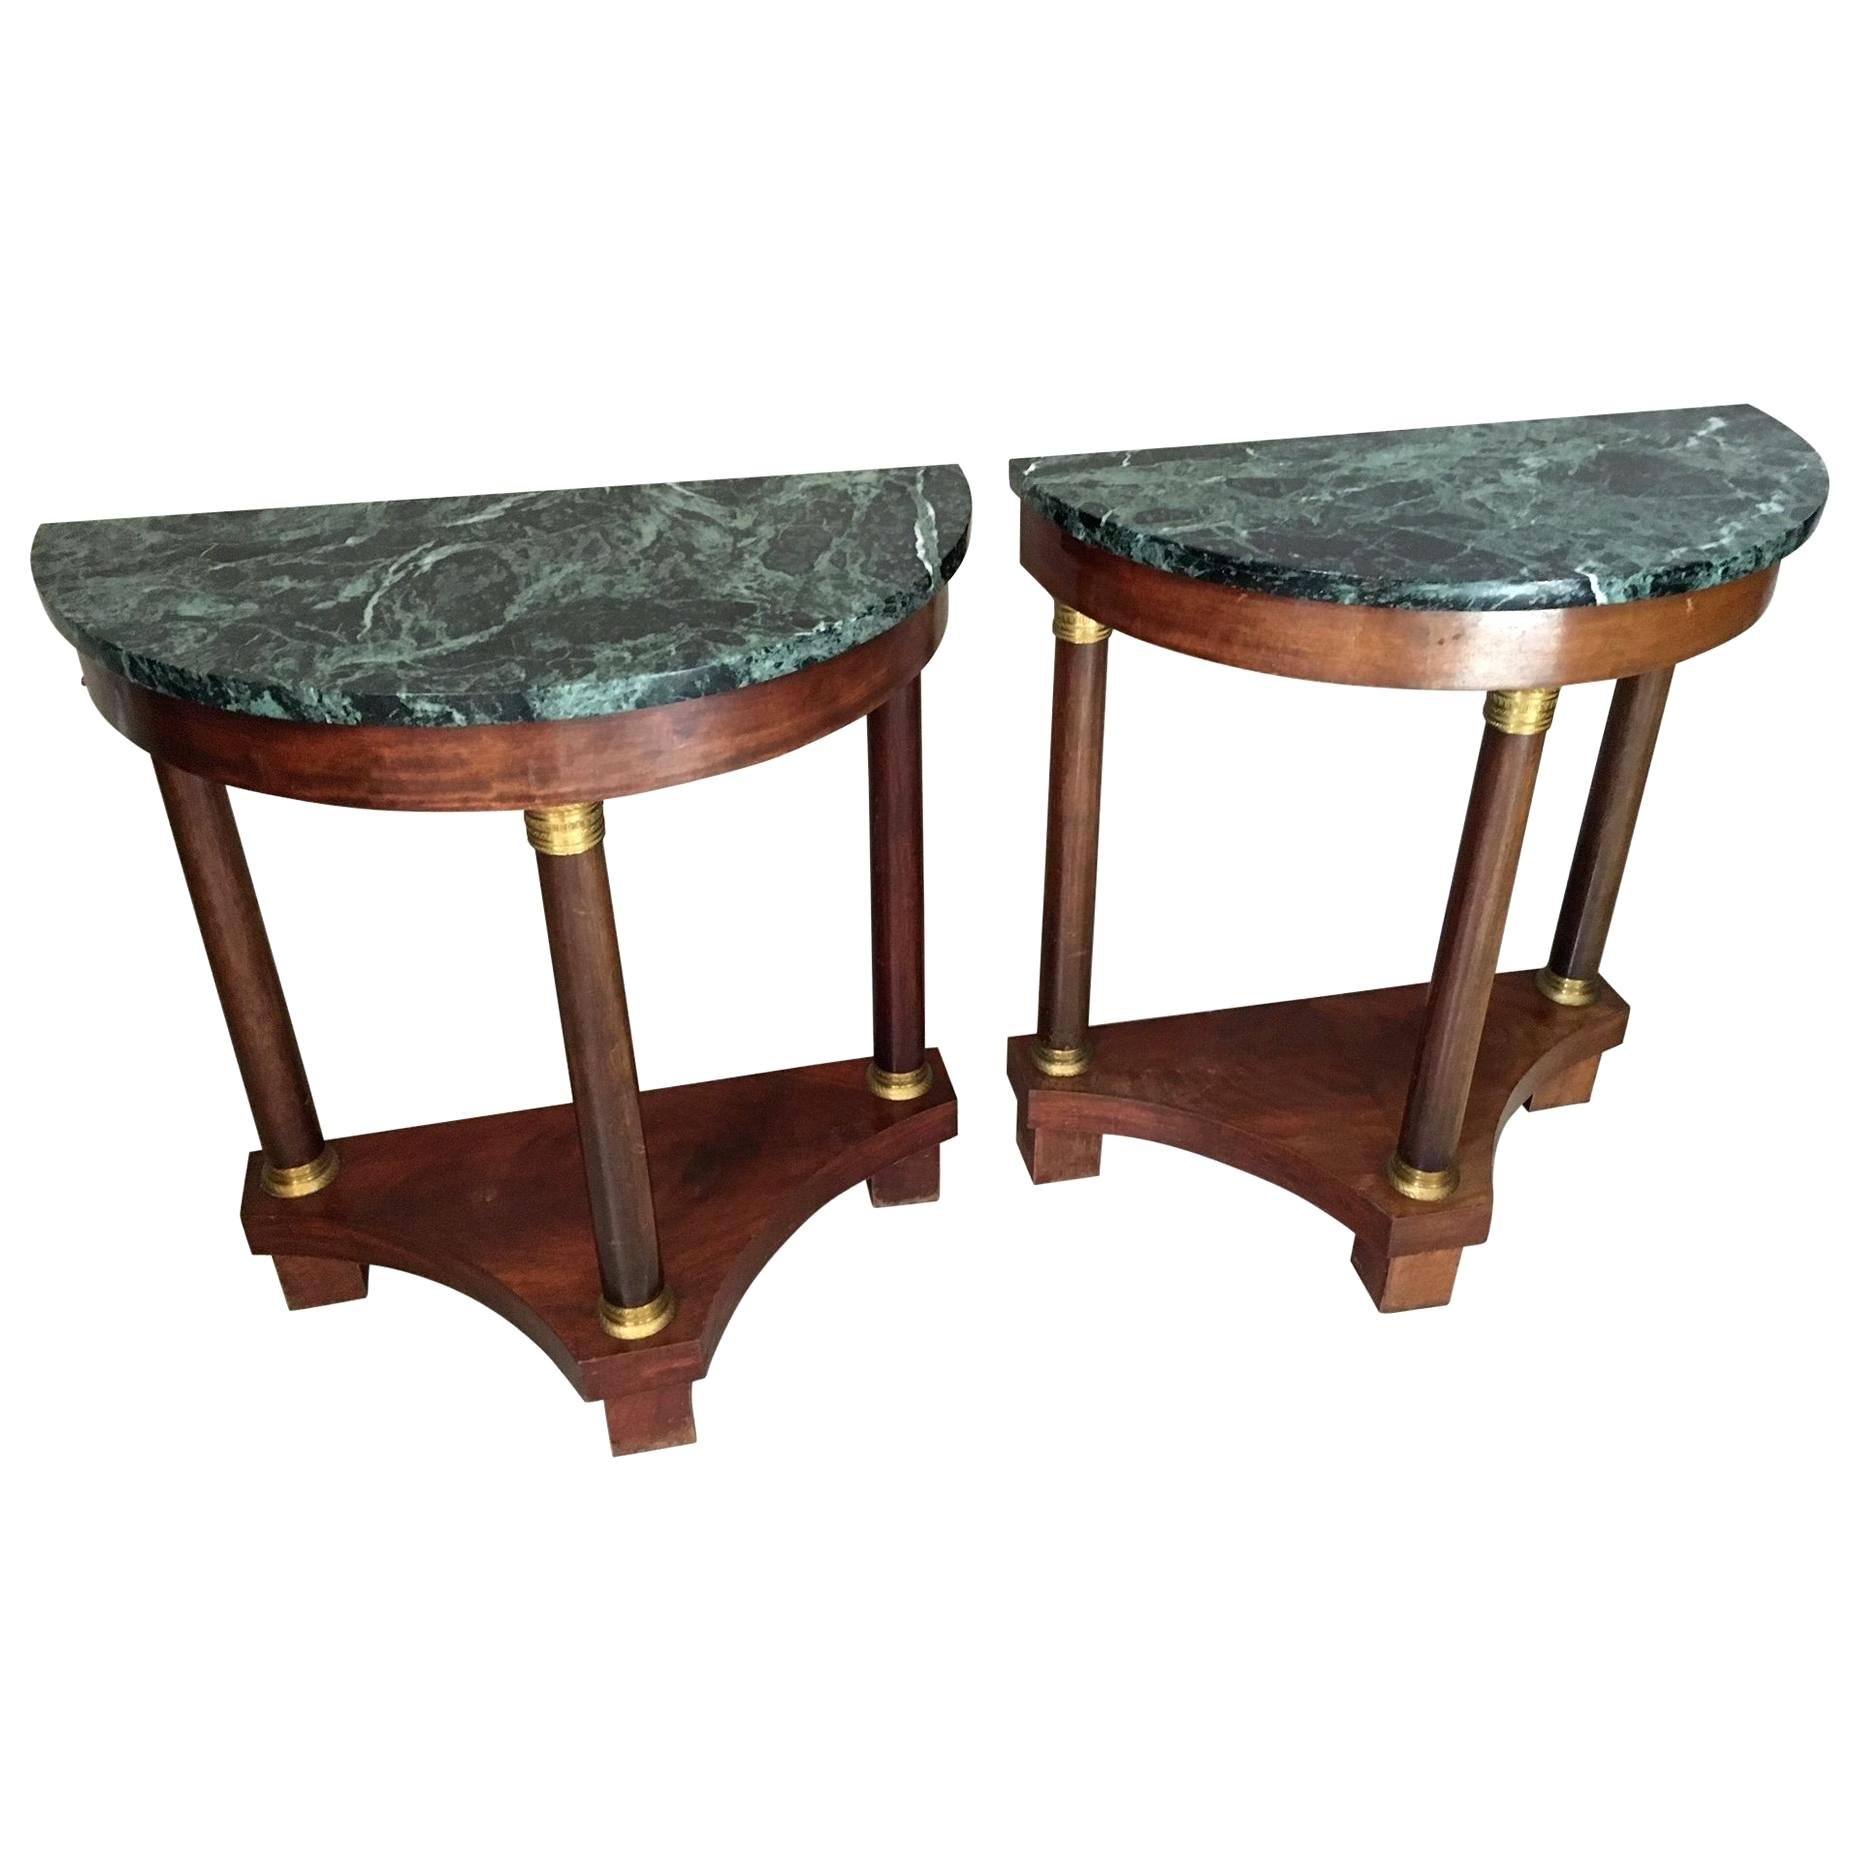 half moon console table ikea amazing with range melody tables drawers pair mahogany empire style for master accent international caravan carved wood full christmas cloth set small